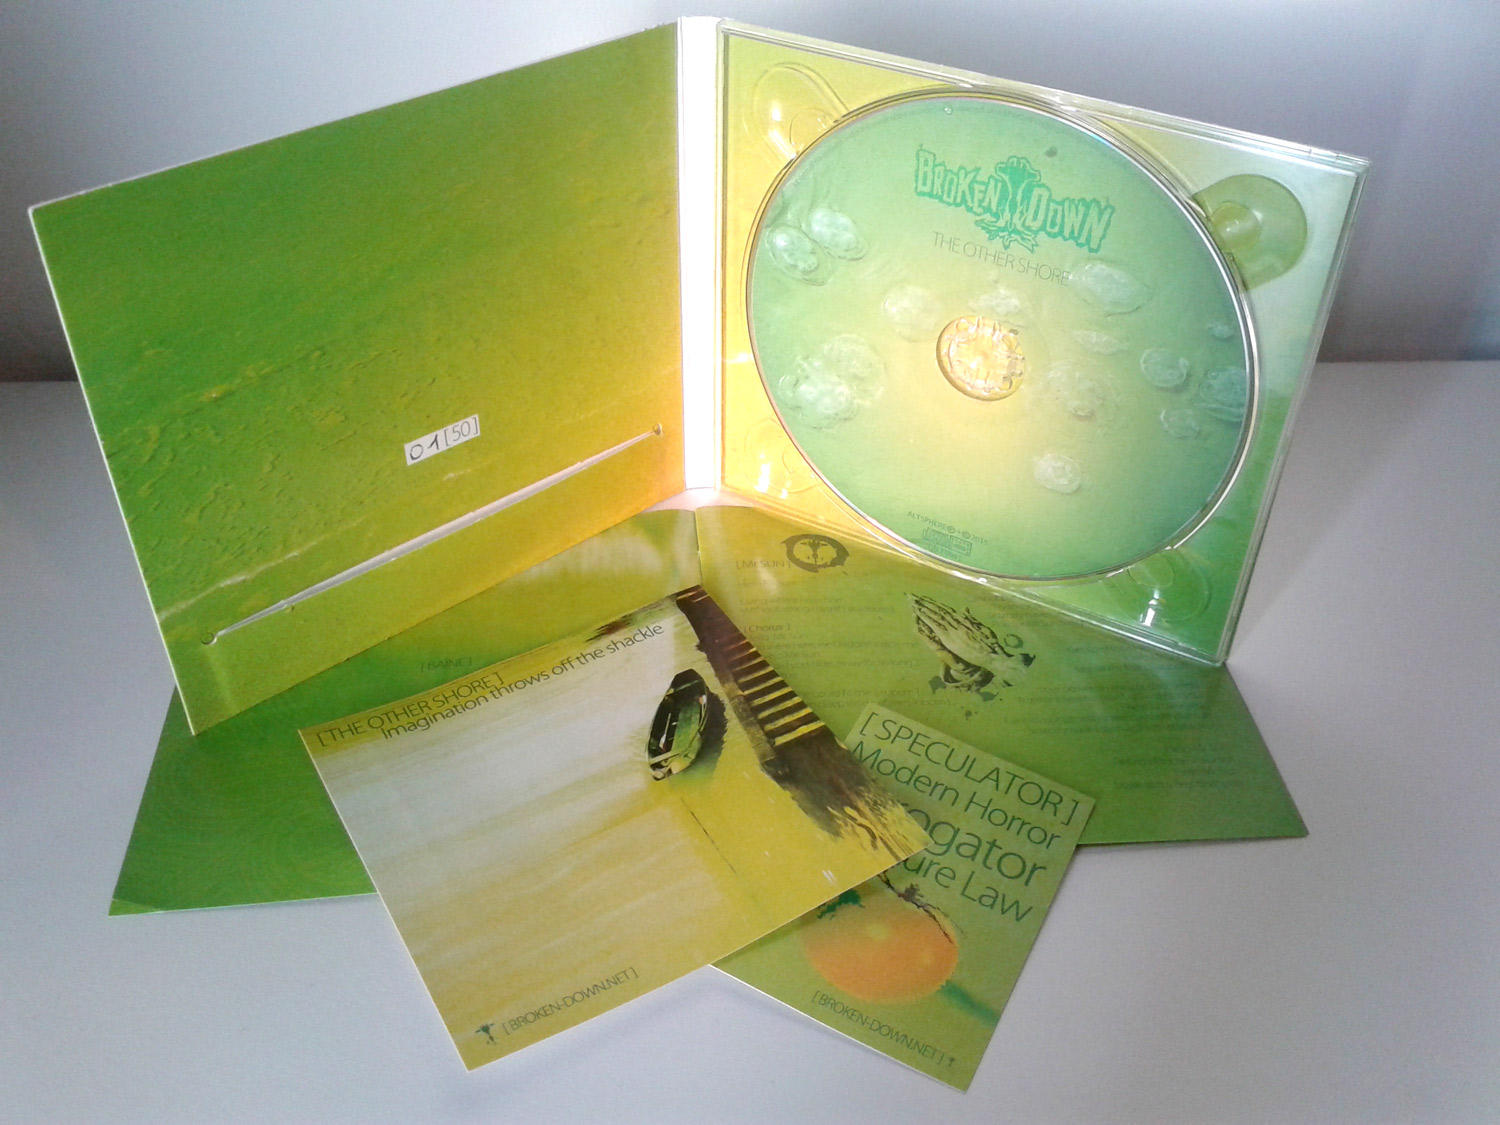 Broken Down The Other Shore limited digipack CD and goodie